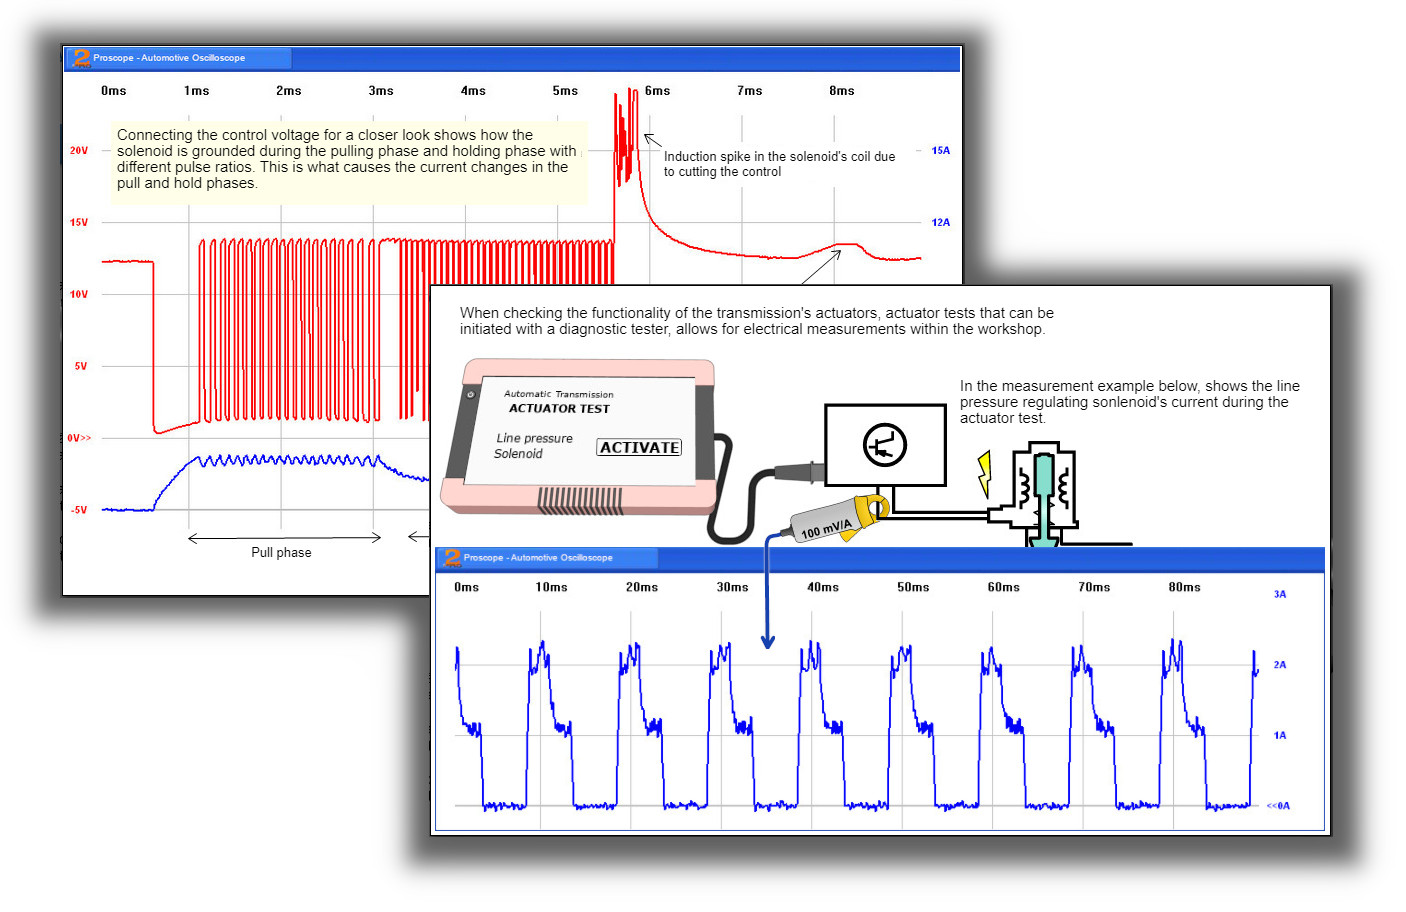 Example images on electrical measurement connected to automatic transmission troubleshooting.